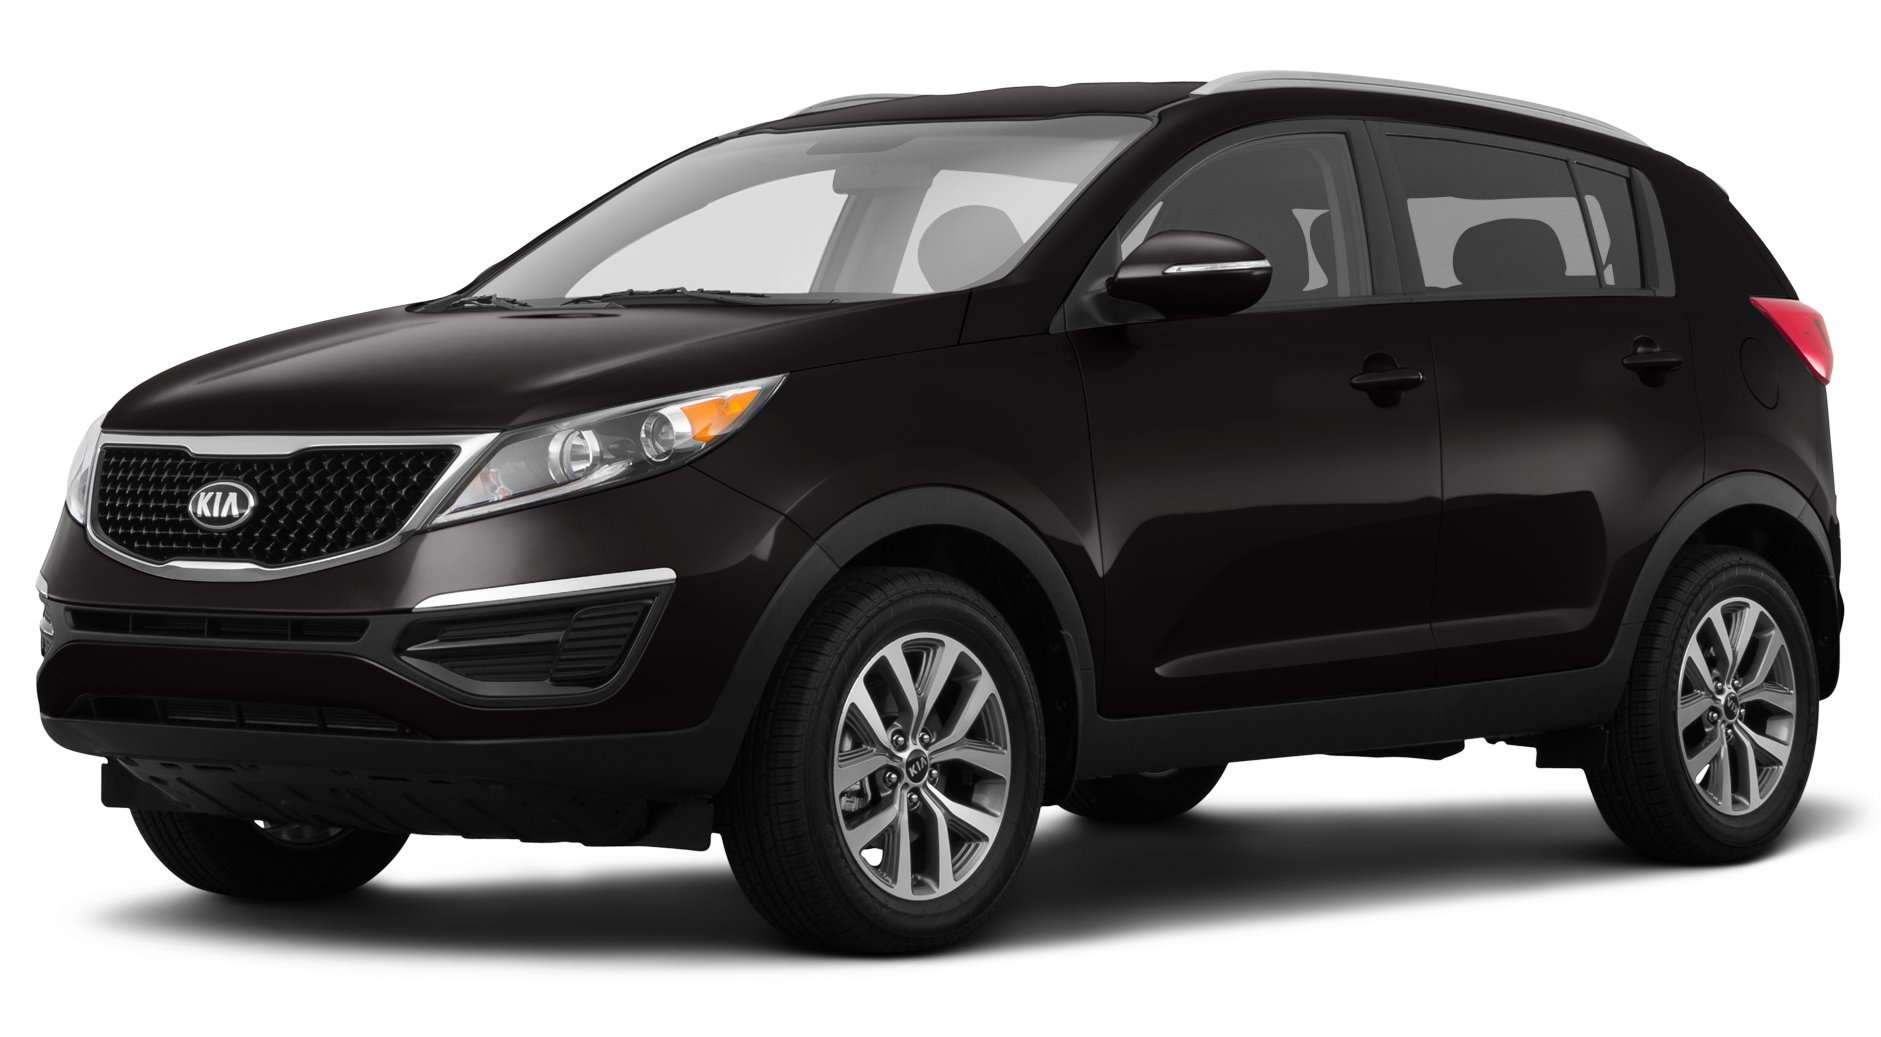 2015 chevrolet equinox reviews images and specs vehicles. Black Bedroom Furniture Sets. Home Design Ideas